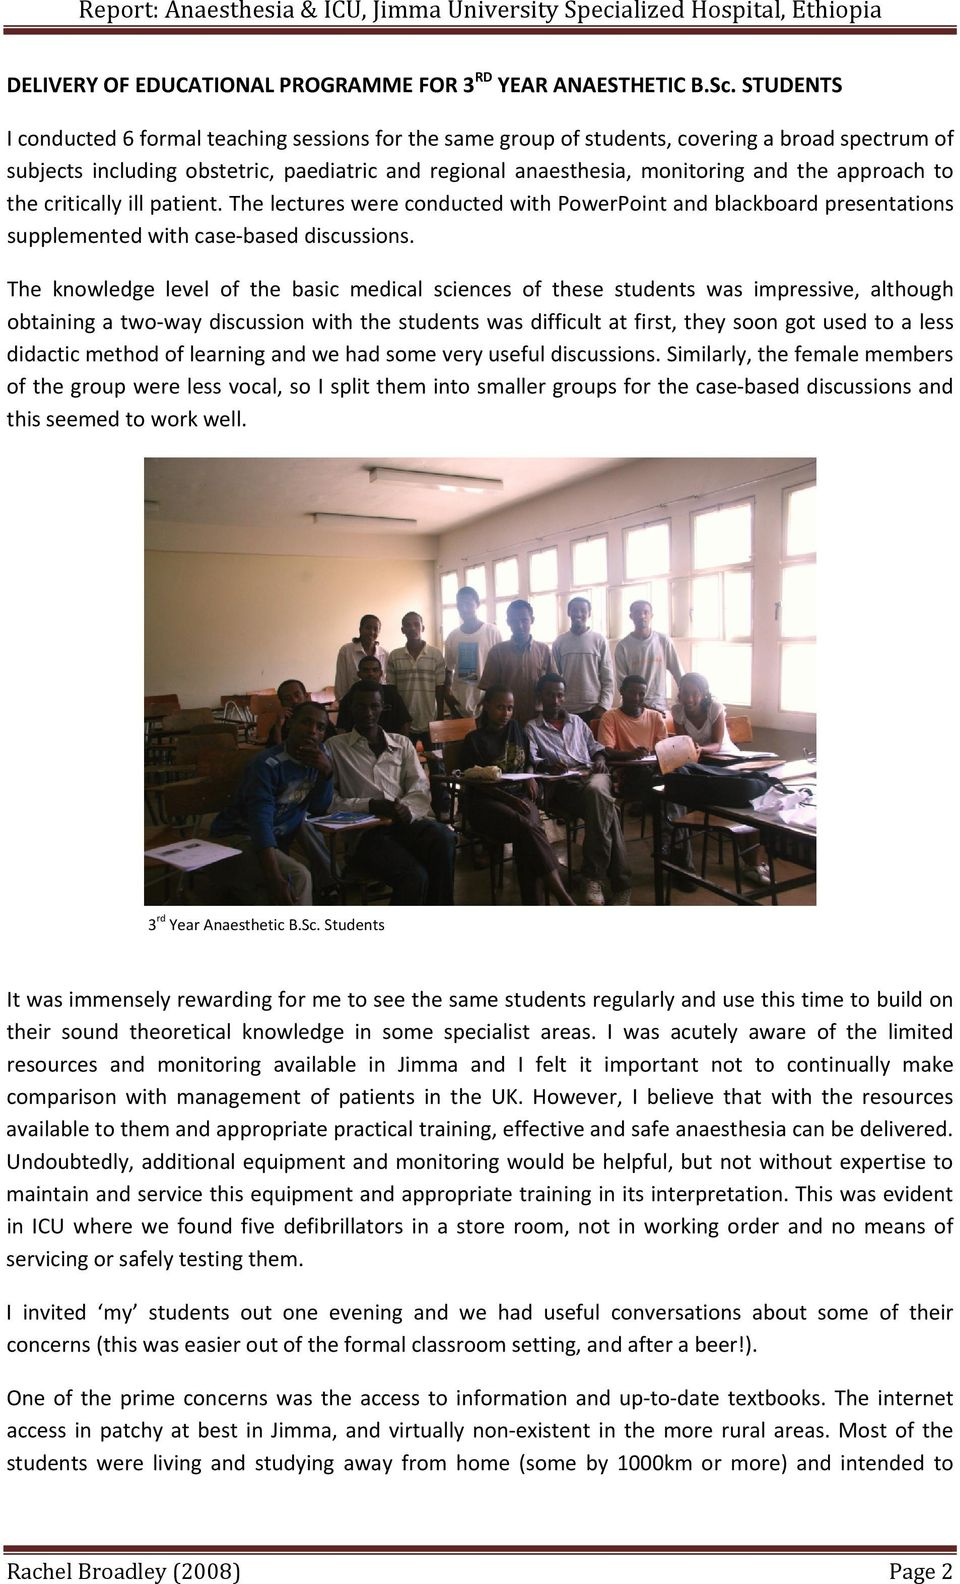 Report: Anaesthesia & ICU, Jimma University Specialized